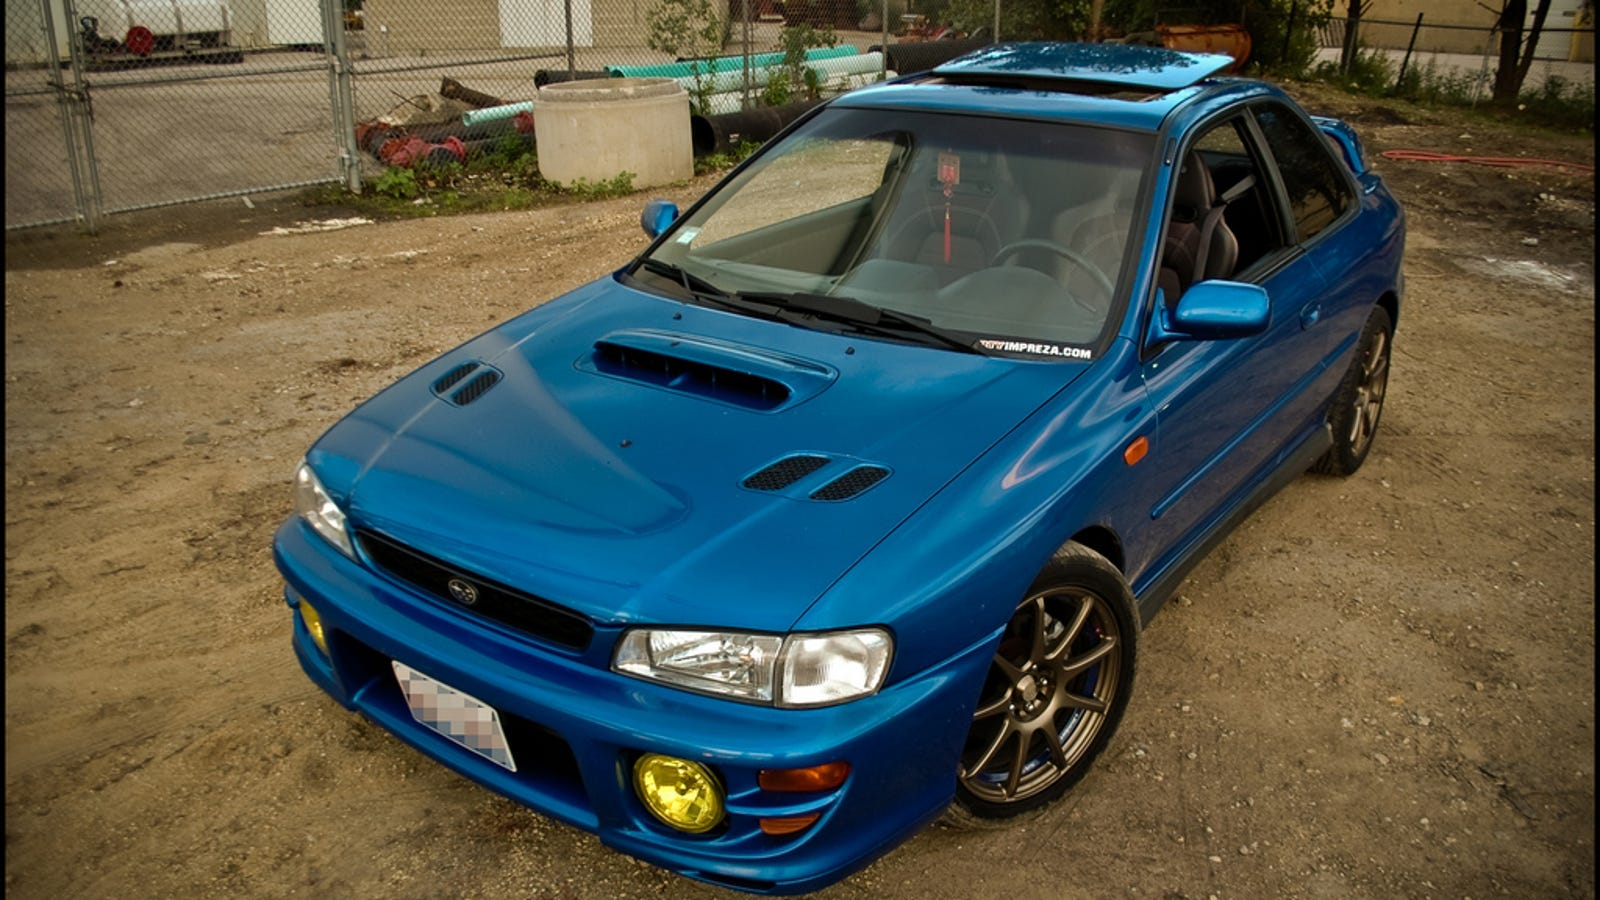 Five Reasons You Need To Buy A Subaru Impreza 2 5 RS Right Now